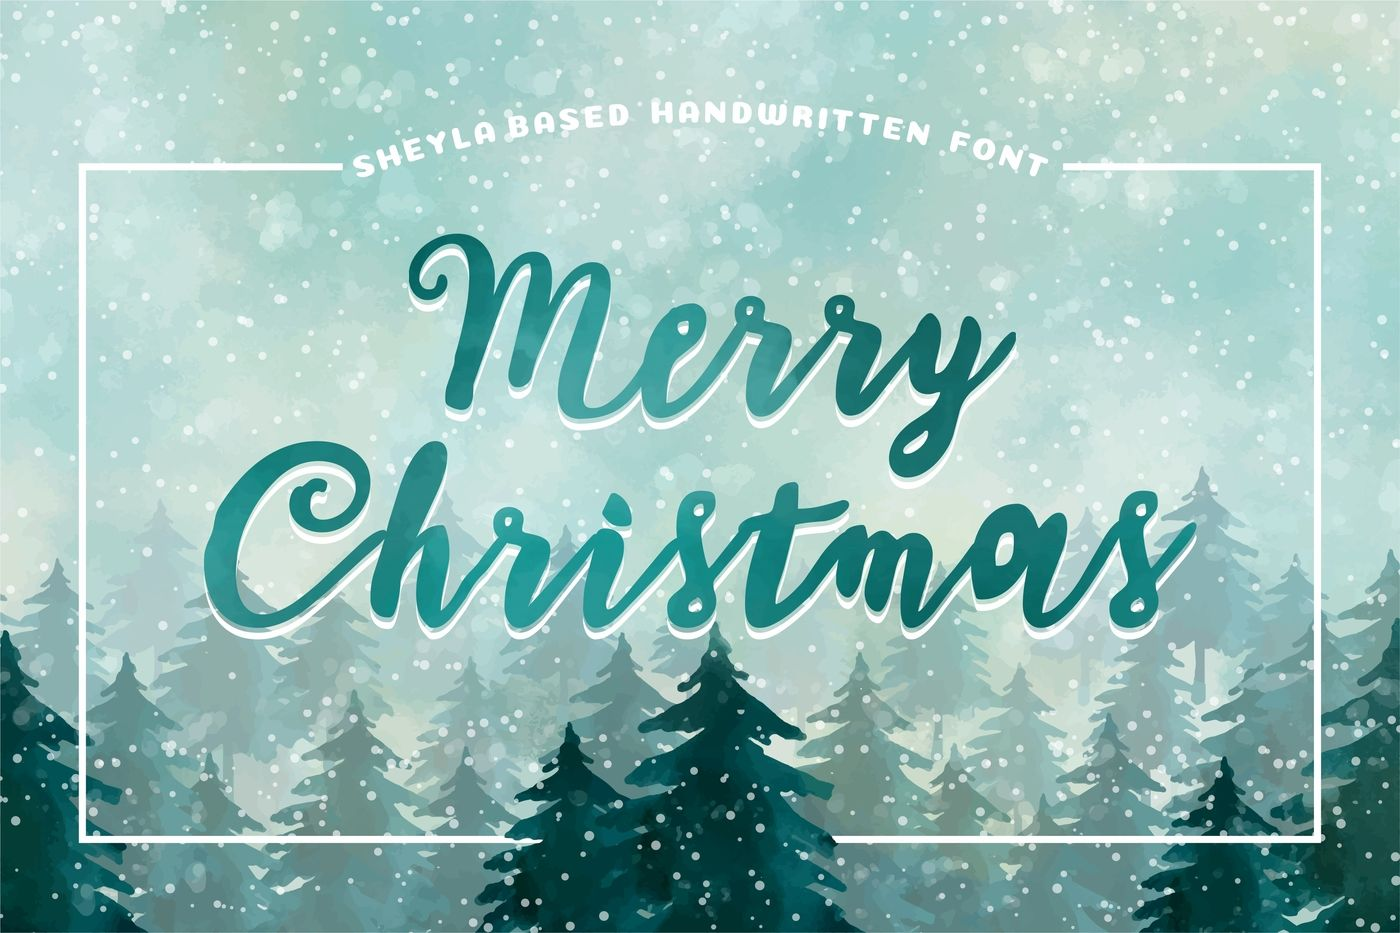 Sheyla Amazing Handwriting Font In Merry Christmas Cover By